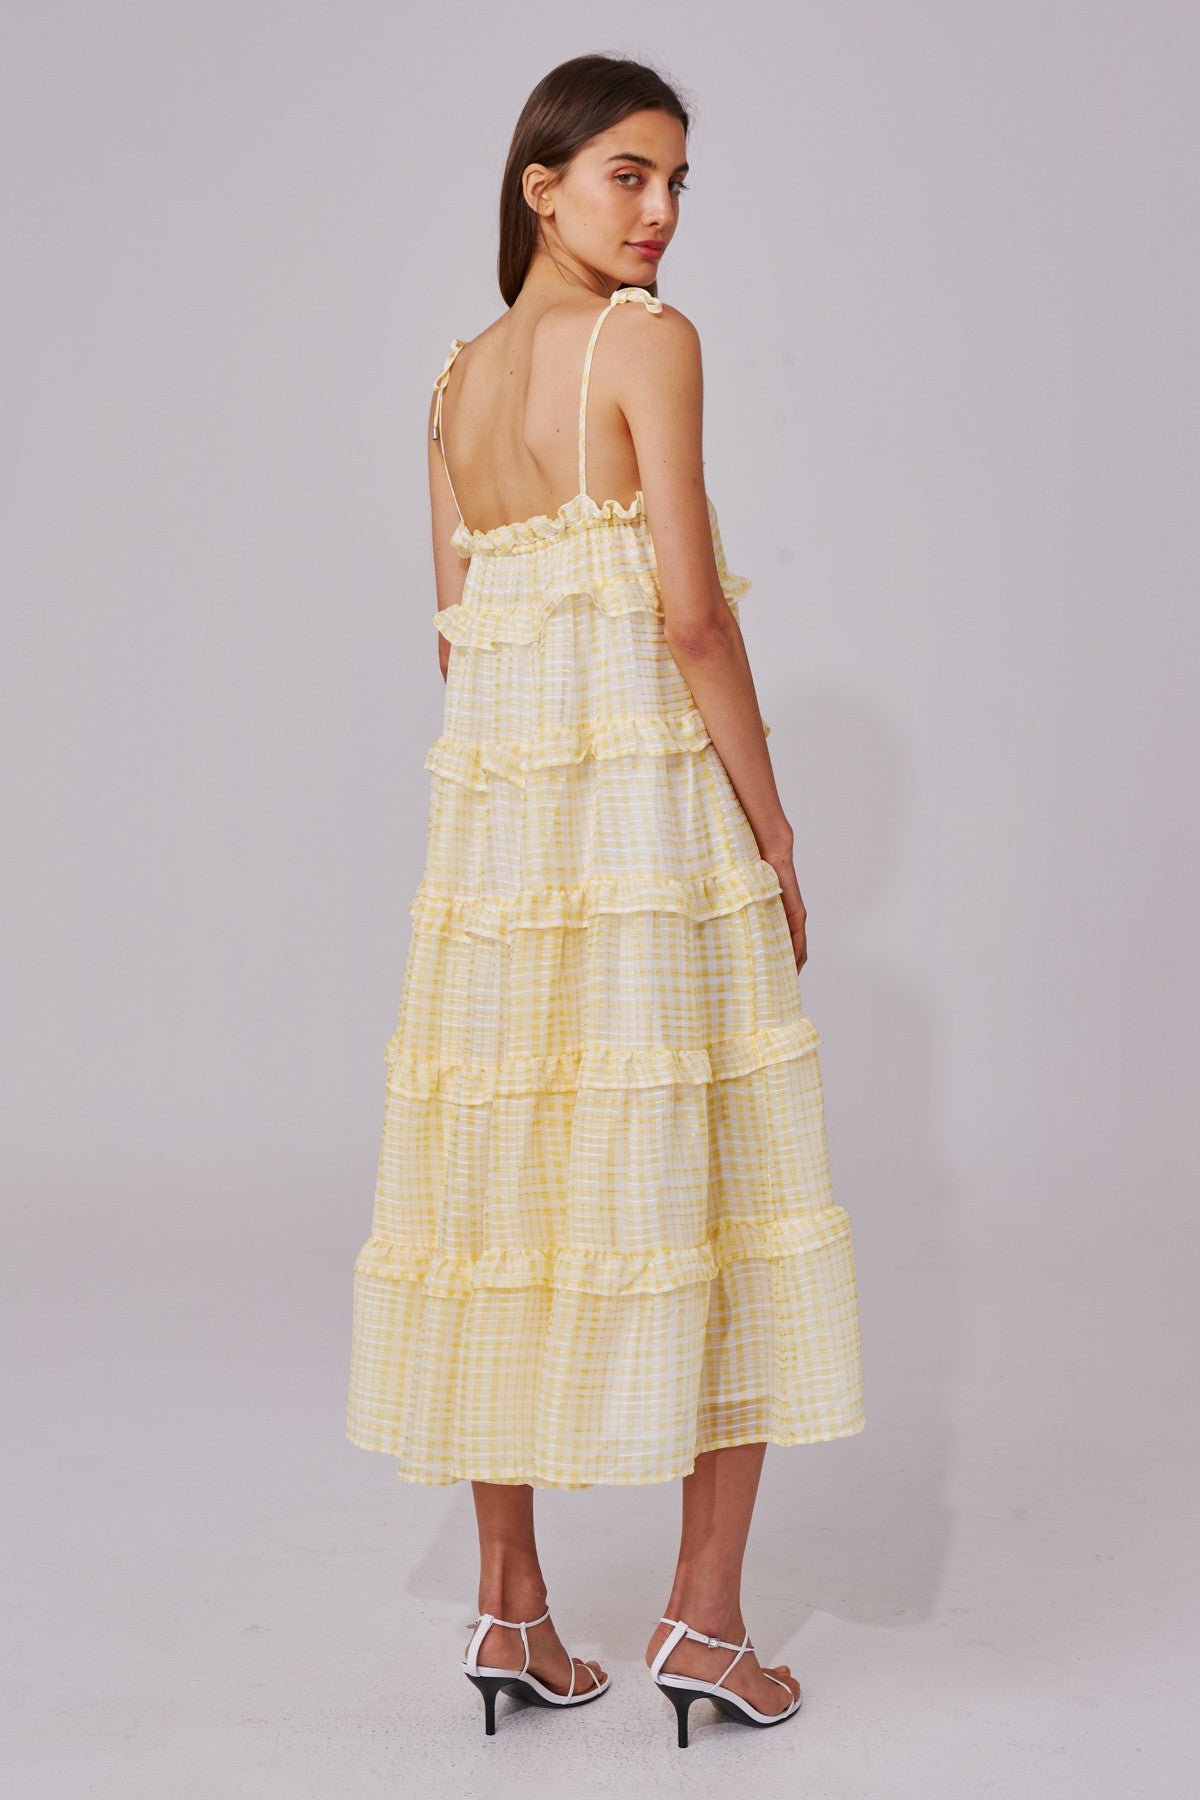 STEALING SUNSHINE DRESS yellow check